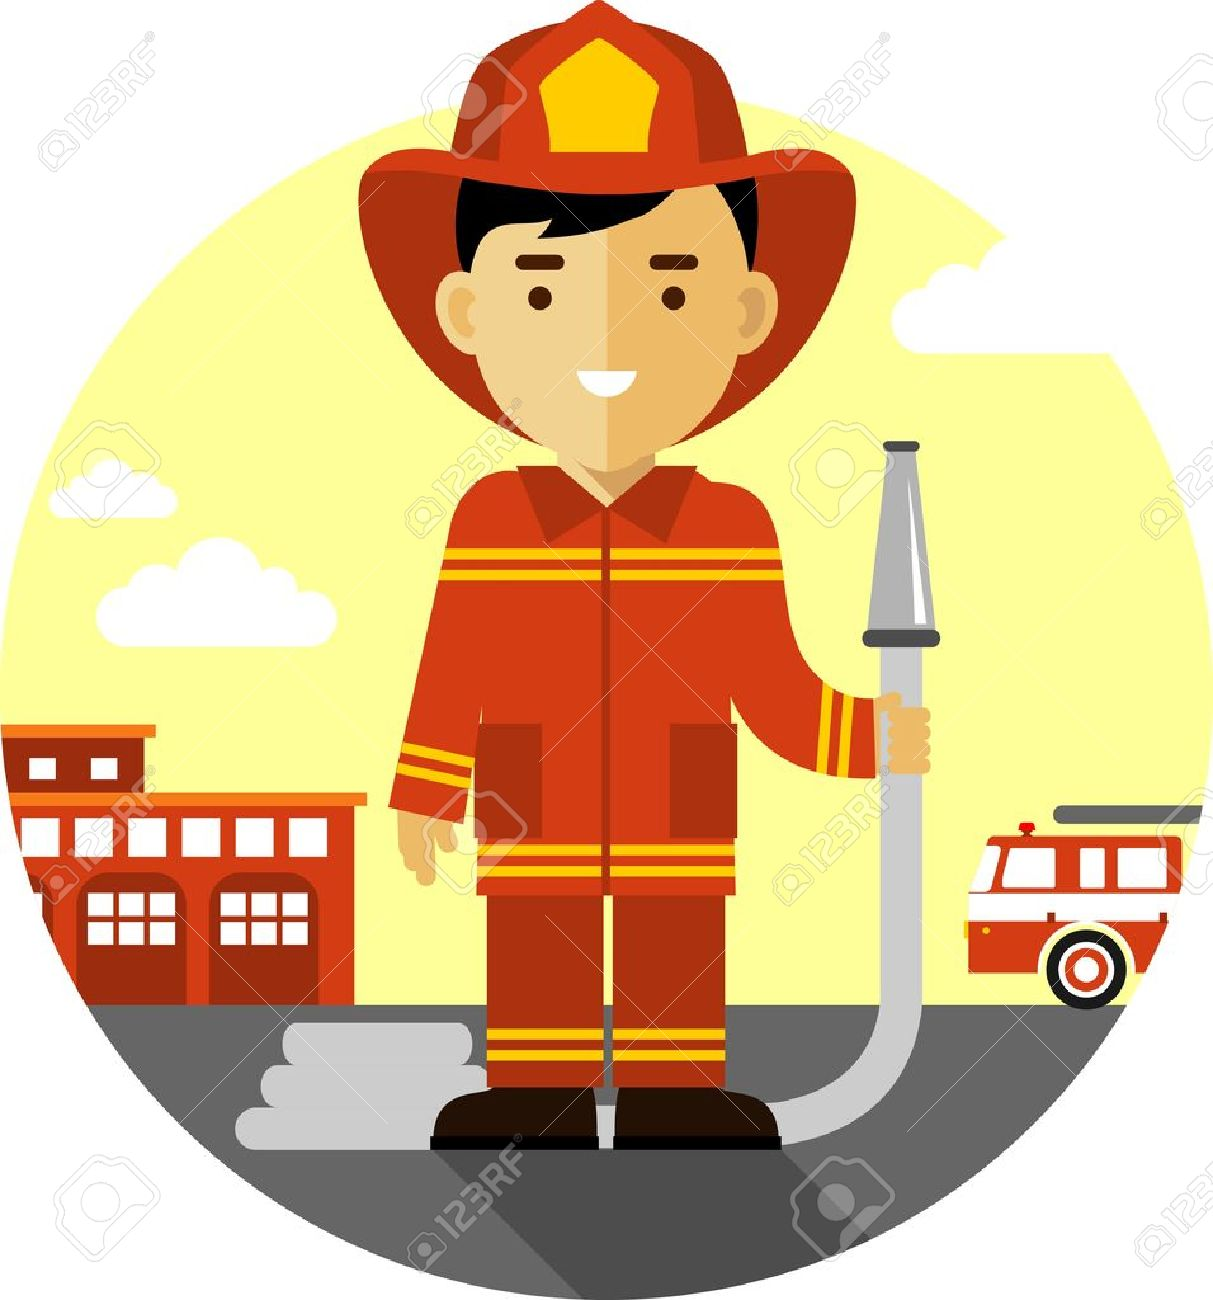 hight resolution of firefighter in uniform on background with fire truck and fire station illustration